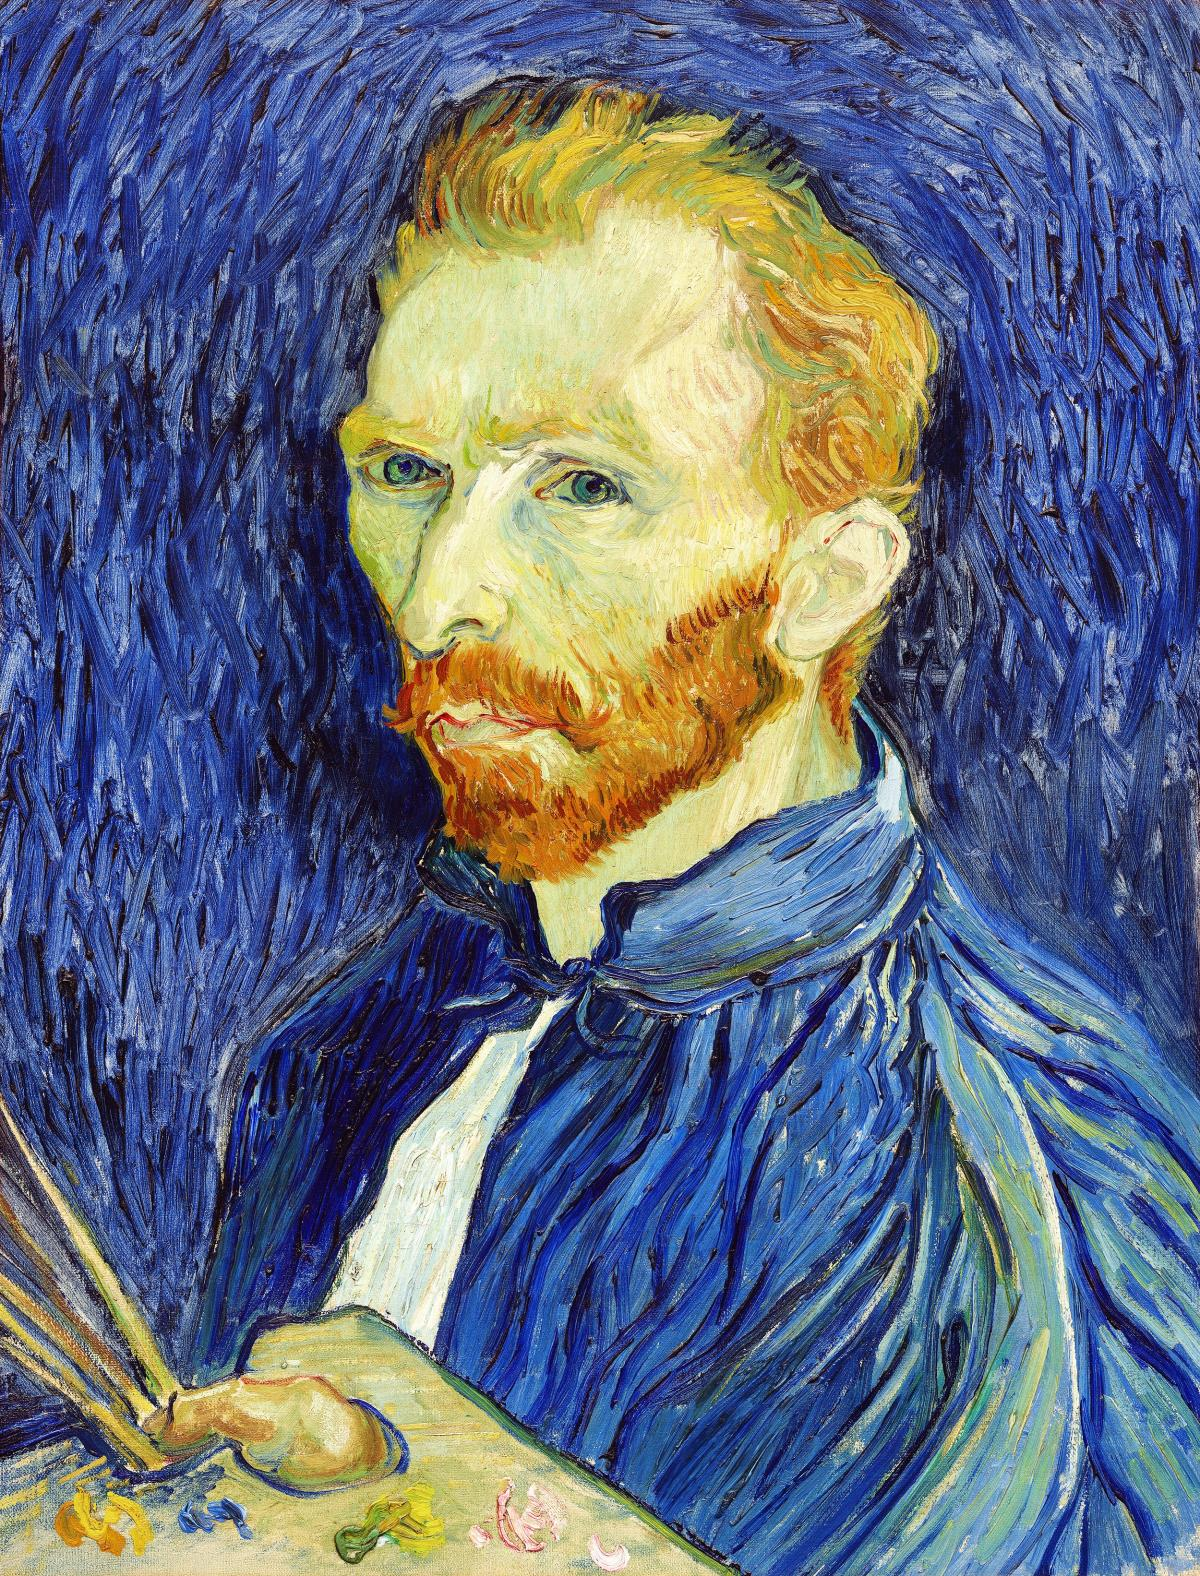 Self-Portrait (1889) by Vincent Van Gogh. Original from The National Gallery of Art.